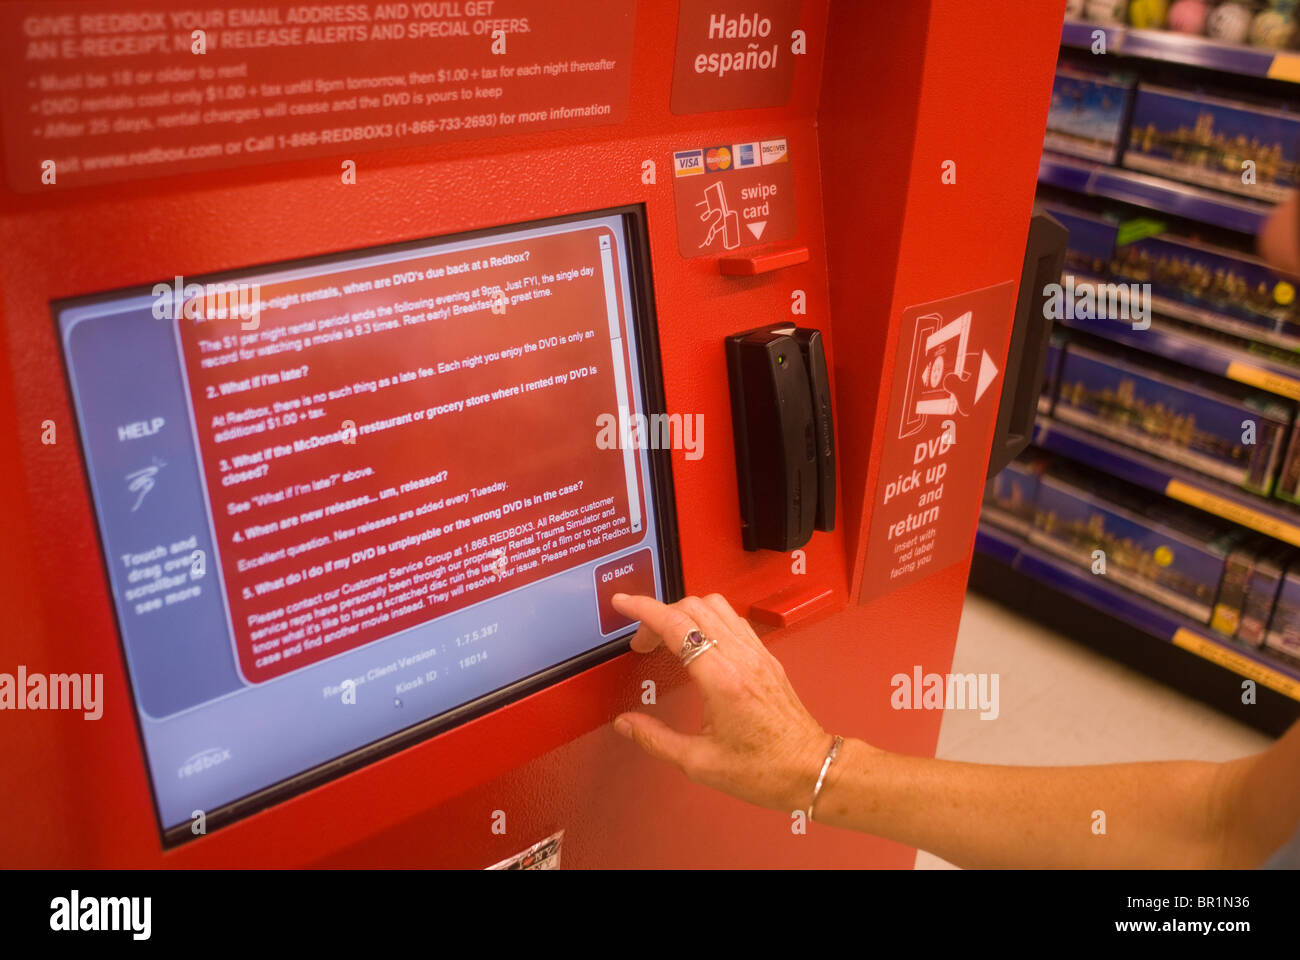 A self-service Redbox video rental kiosk is seen in a